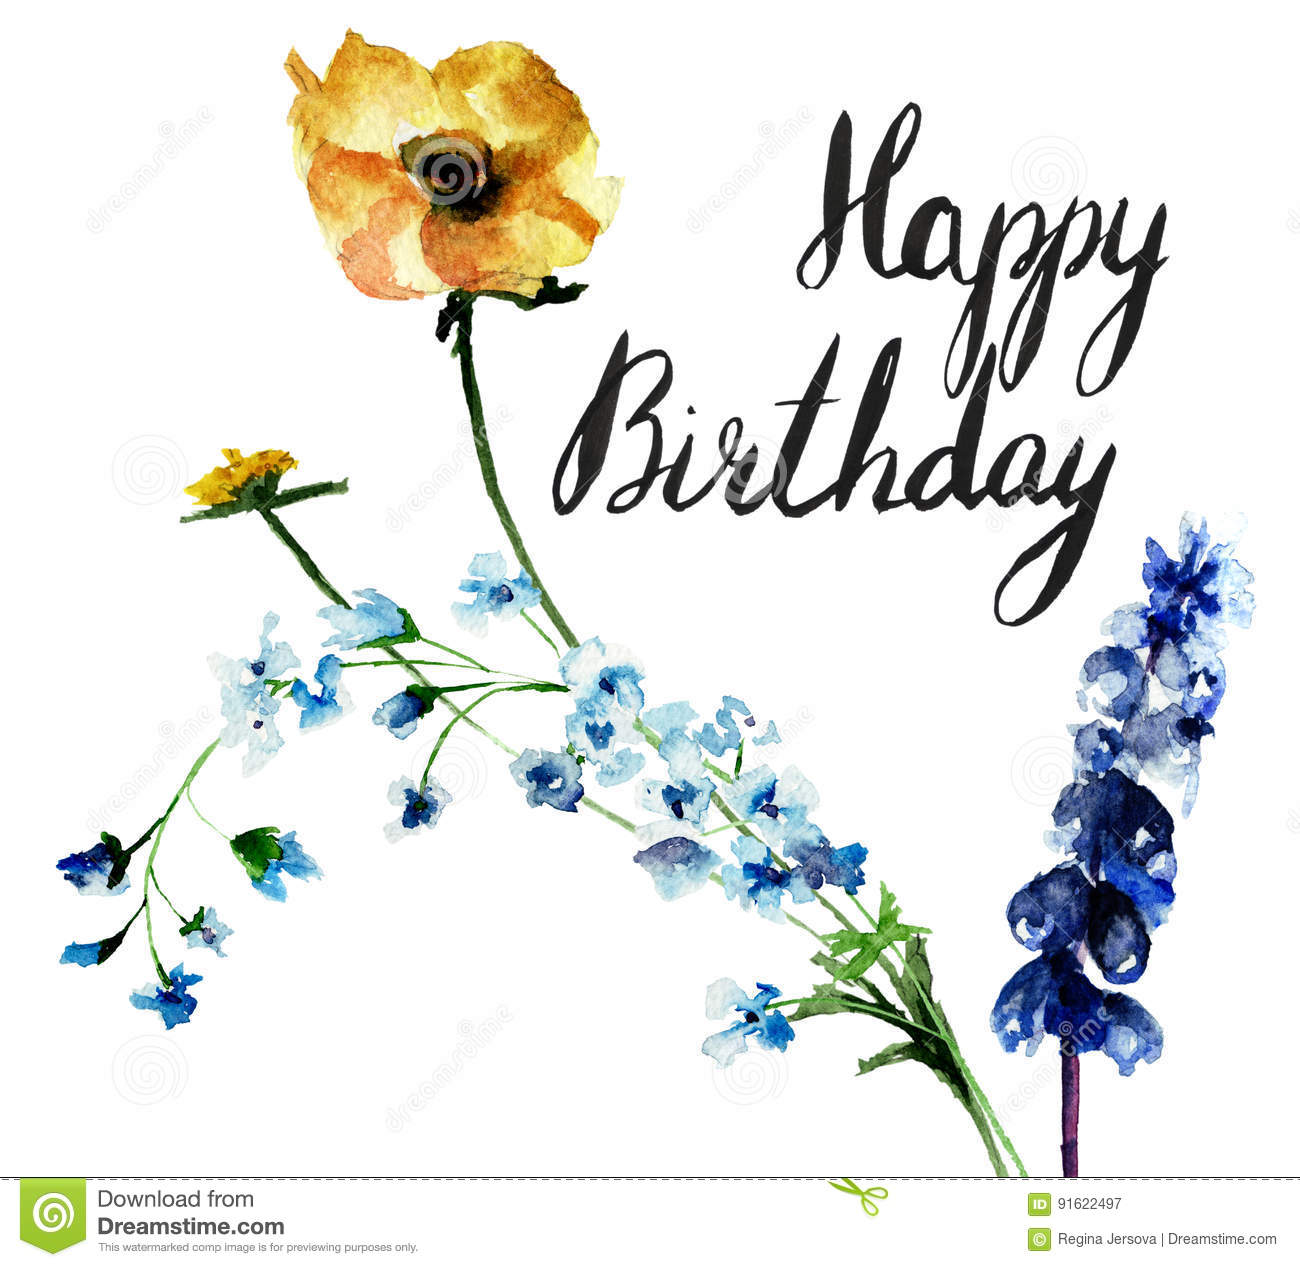 Original floral background with flowers and title happy birthday original floral background with flowers and title happy birthday izmirmasajfo